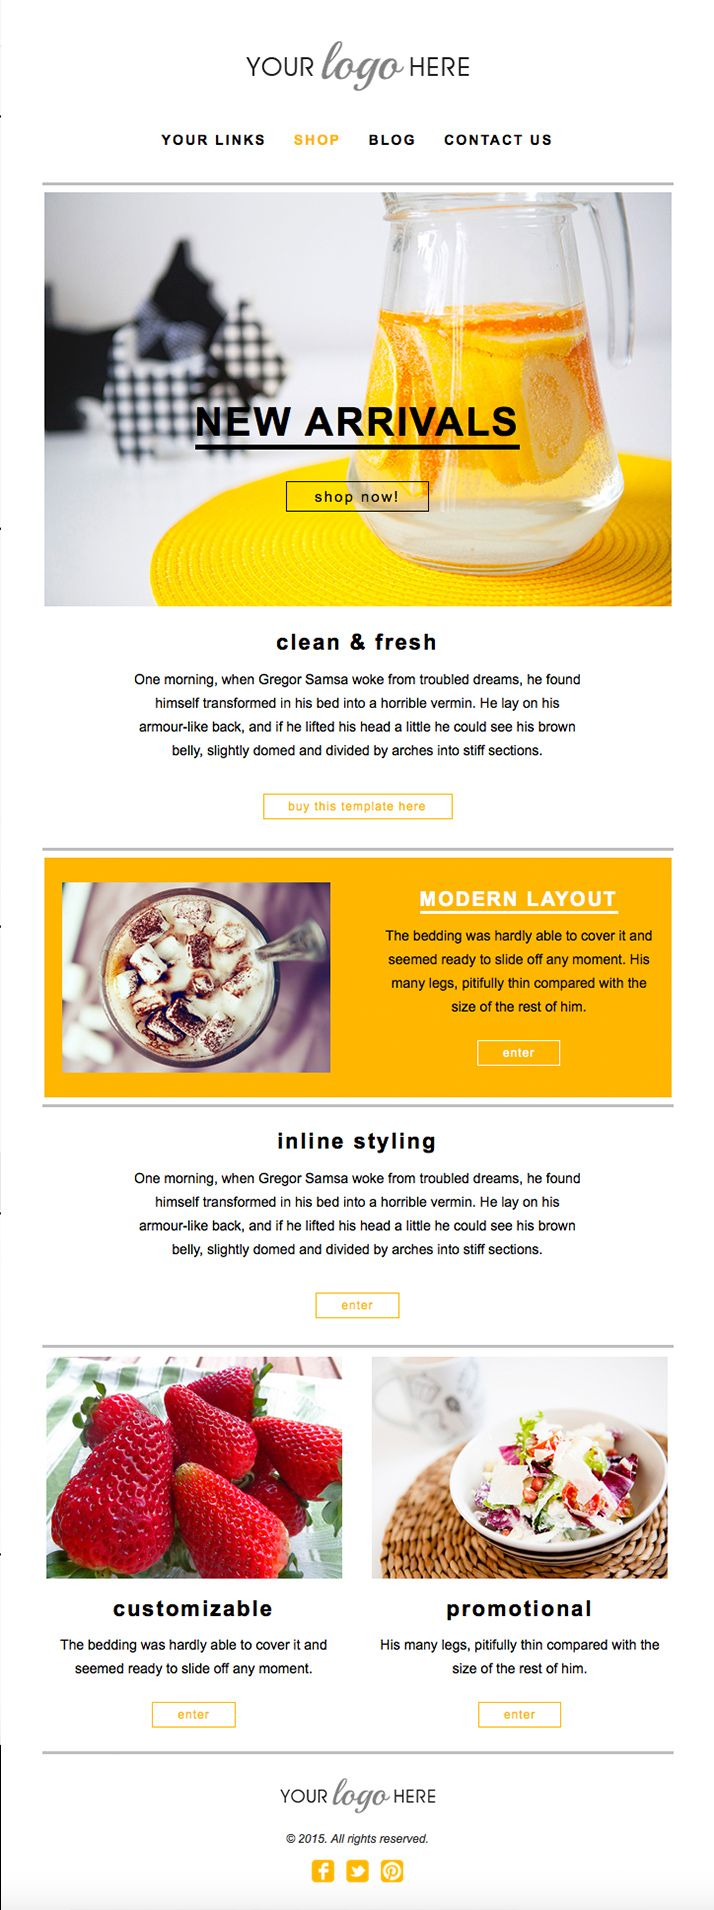 Fresh Modern design | E-Newsletter Template Design, handcoded, Mailchimp compatible, fully customizable.